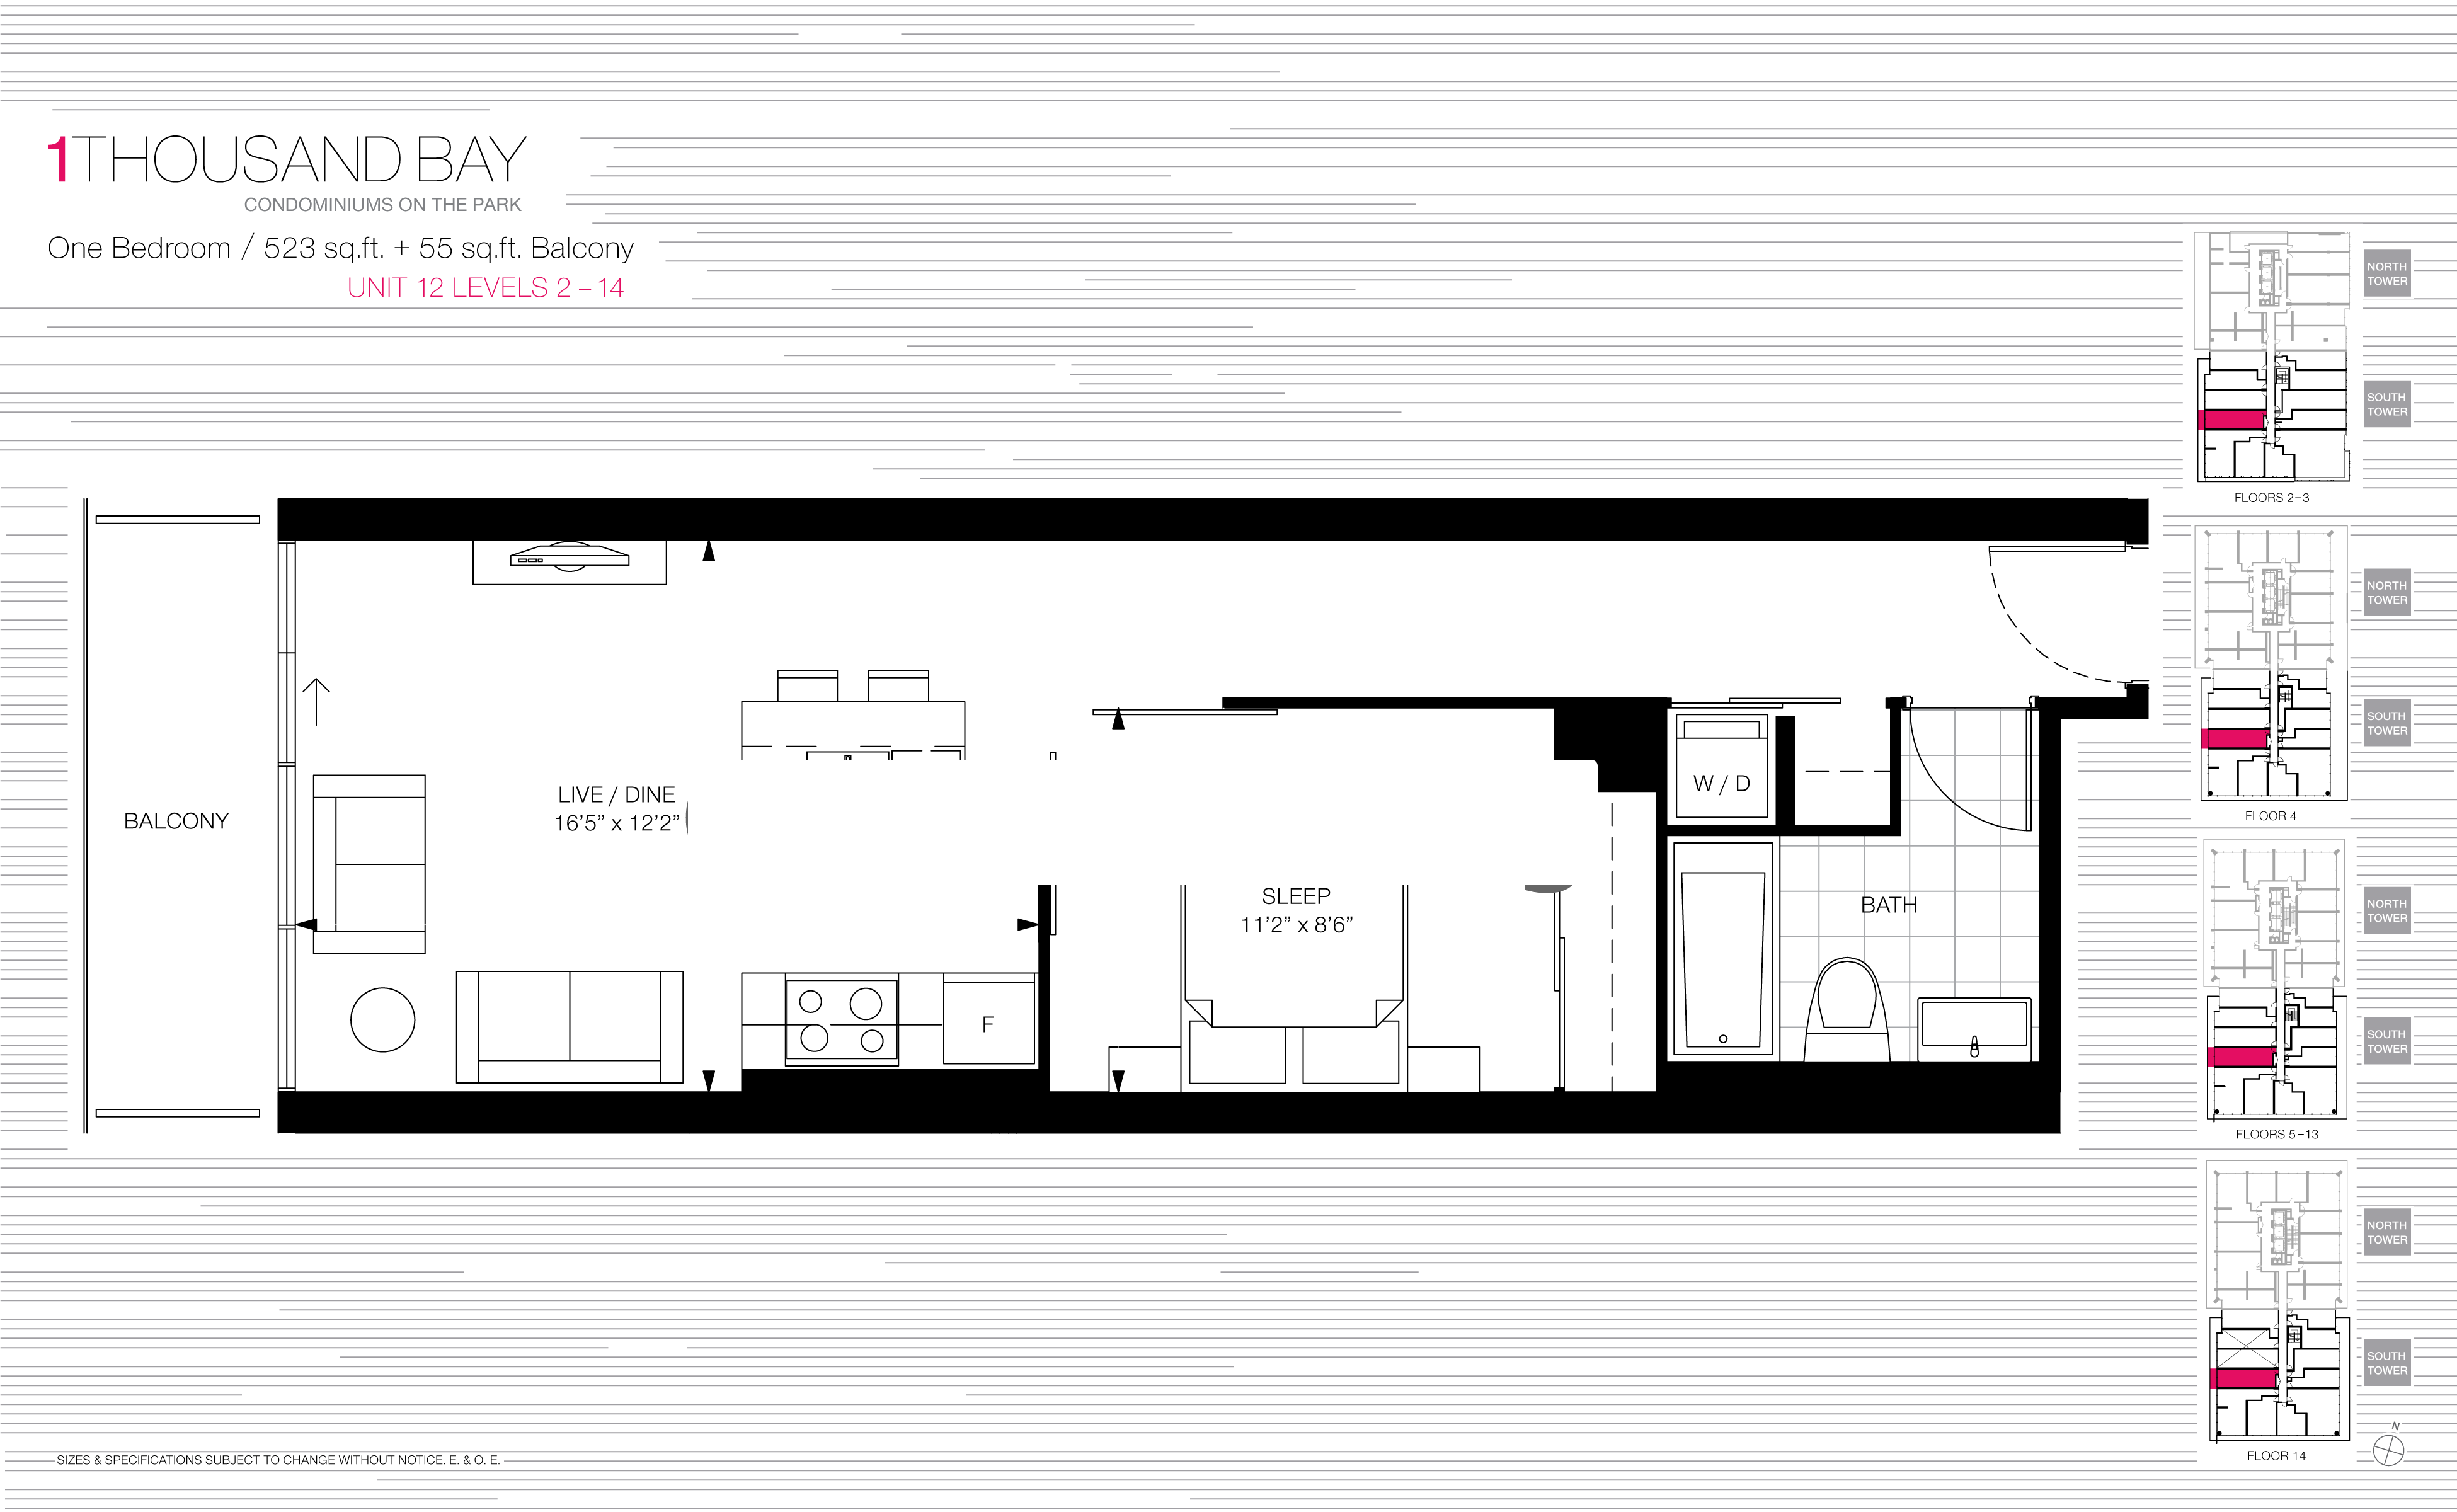 1000 BAY FLOORPLANS - ONE BED SUITE 523 SQ FT - CONTACT YOSSI KAPLAN